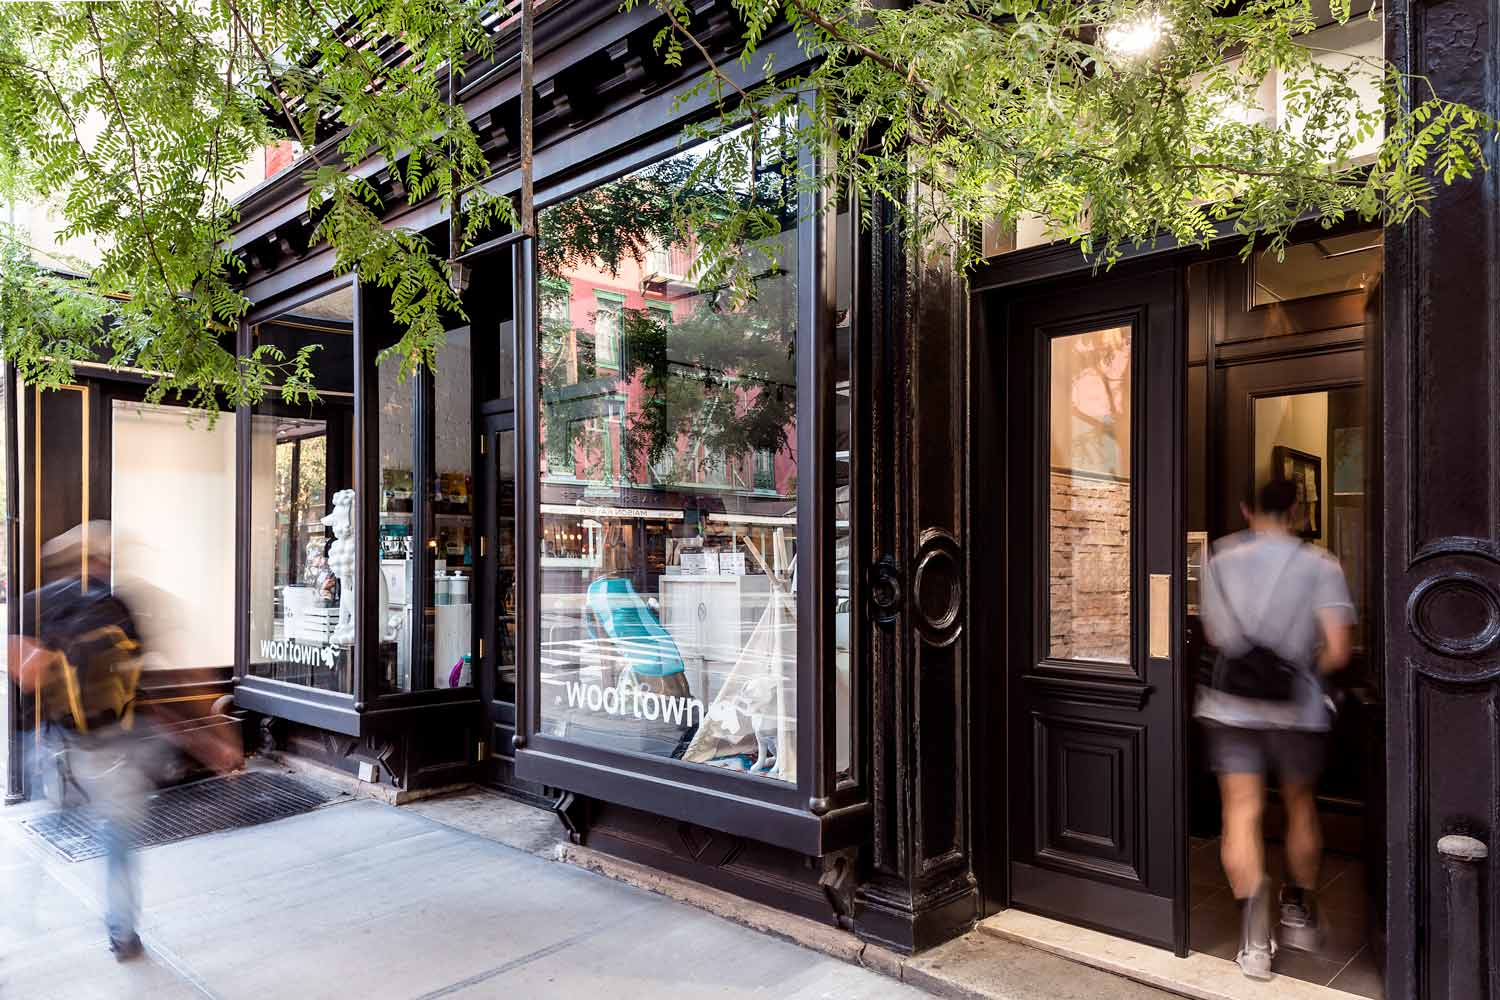 Reconfiguration and historic renovation of storefront on Christopher Street by OCV Architects.